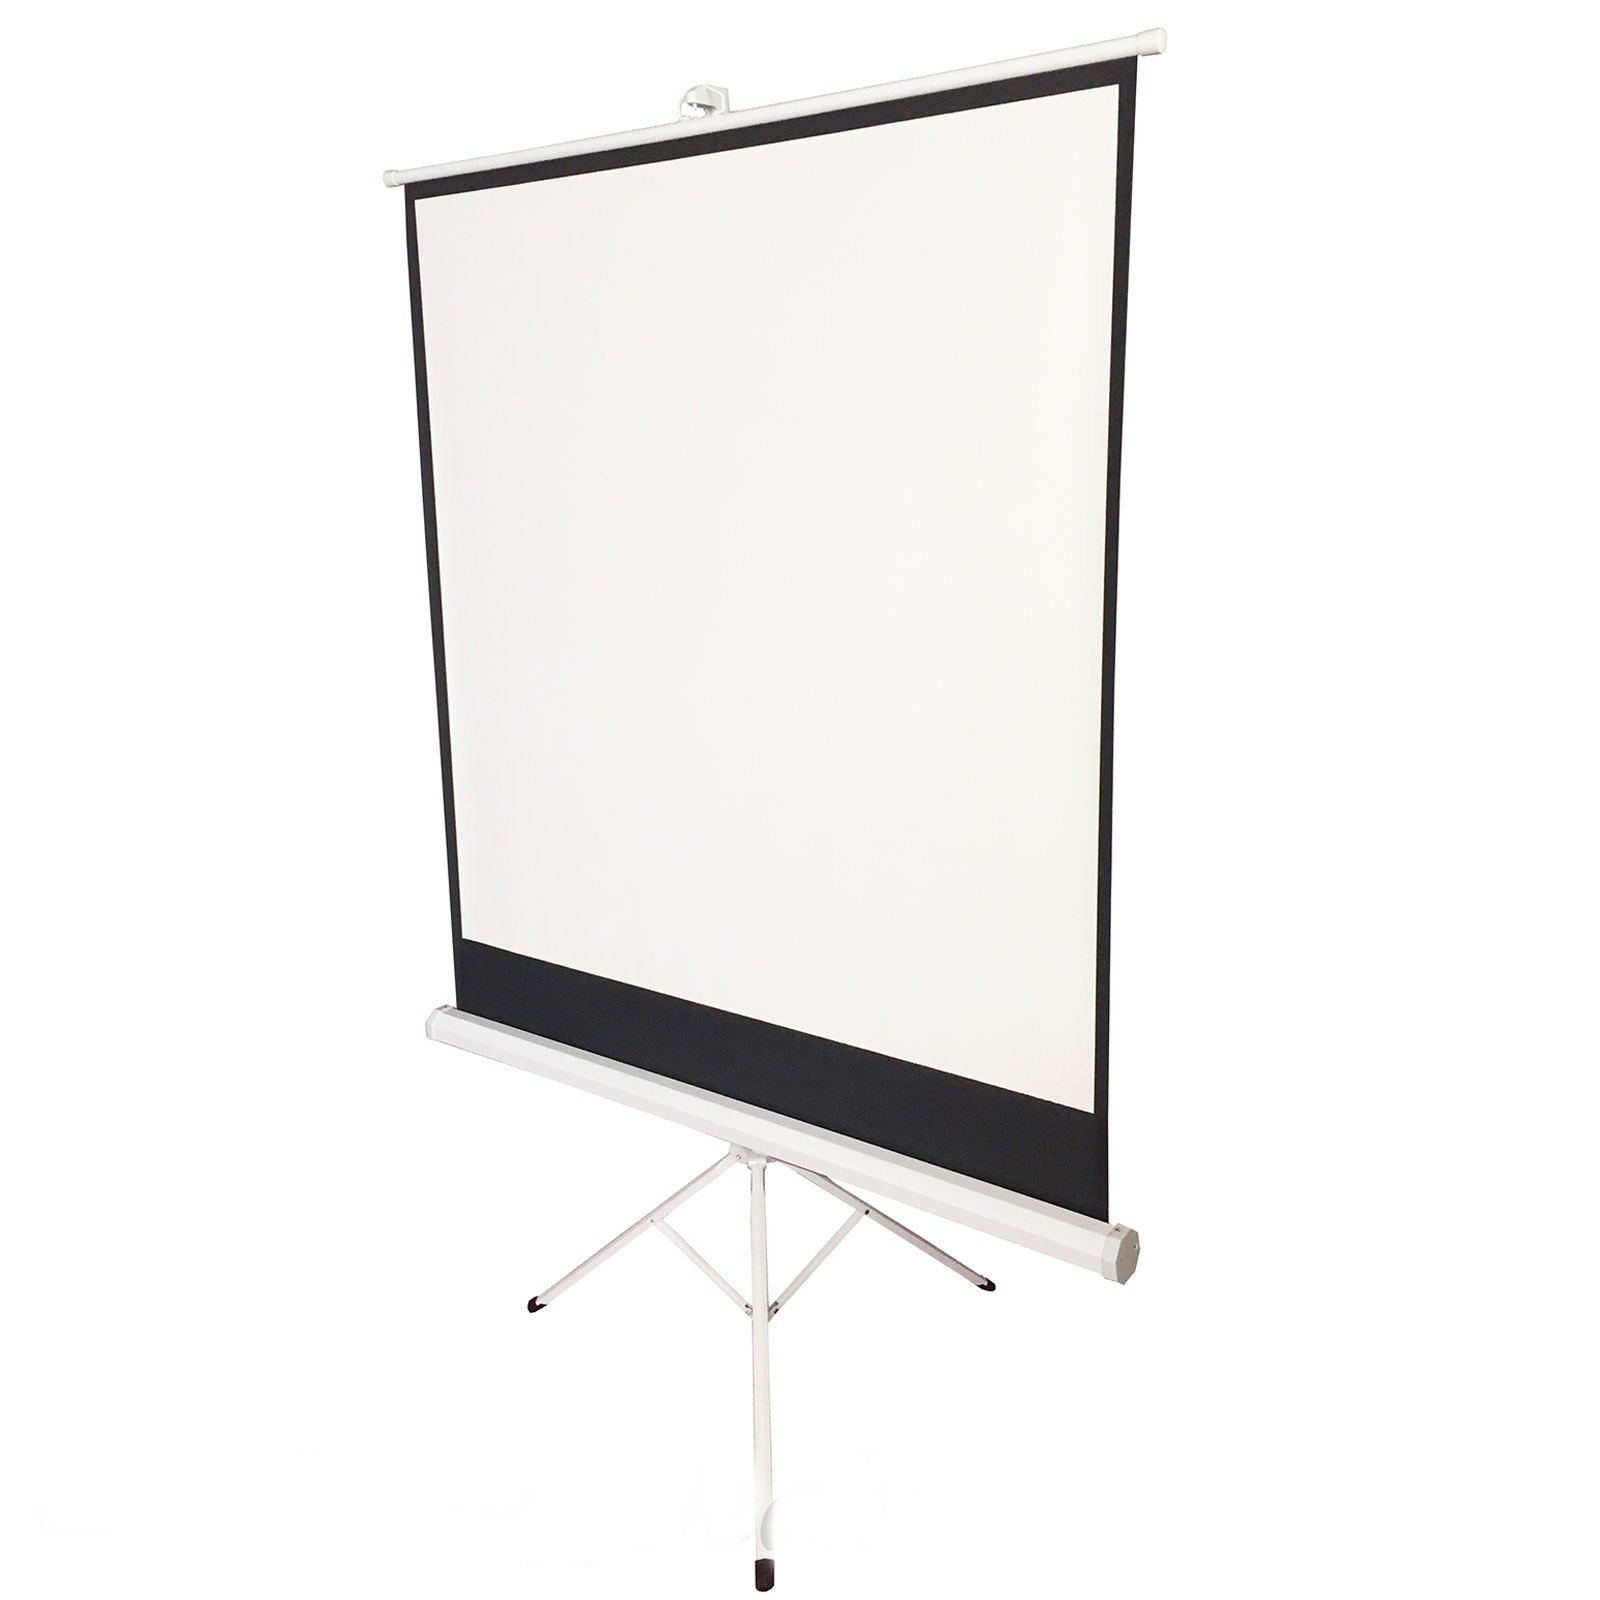 New 125x 125cm HD Matte Pull Down Projector Tripod Screen Home Cinema Projection+ FREE E-Book by Eight24hours